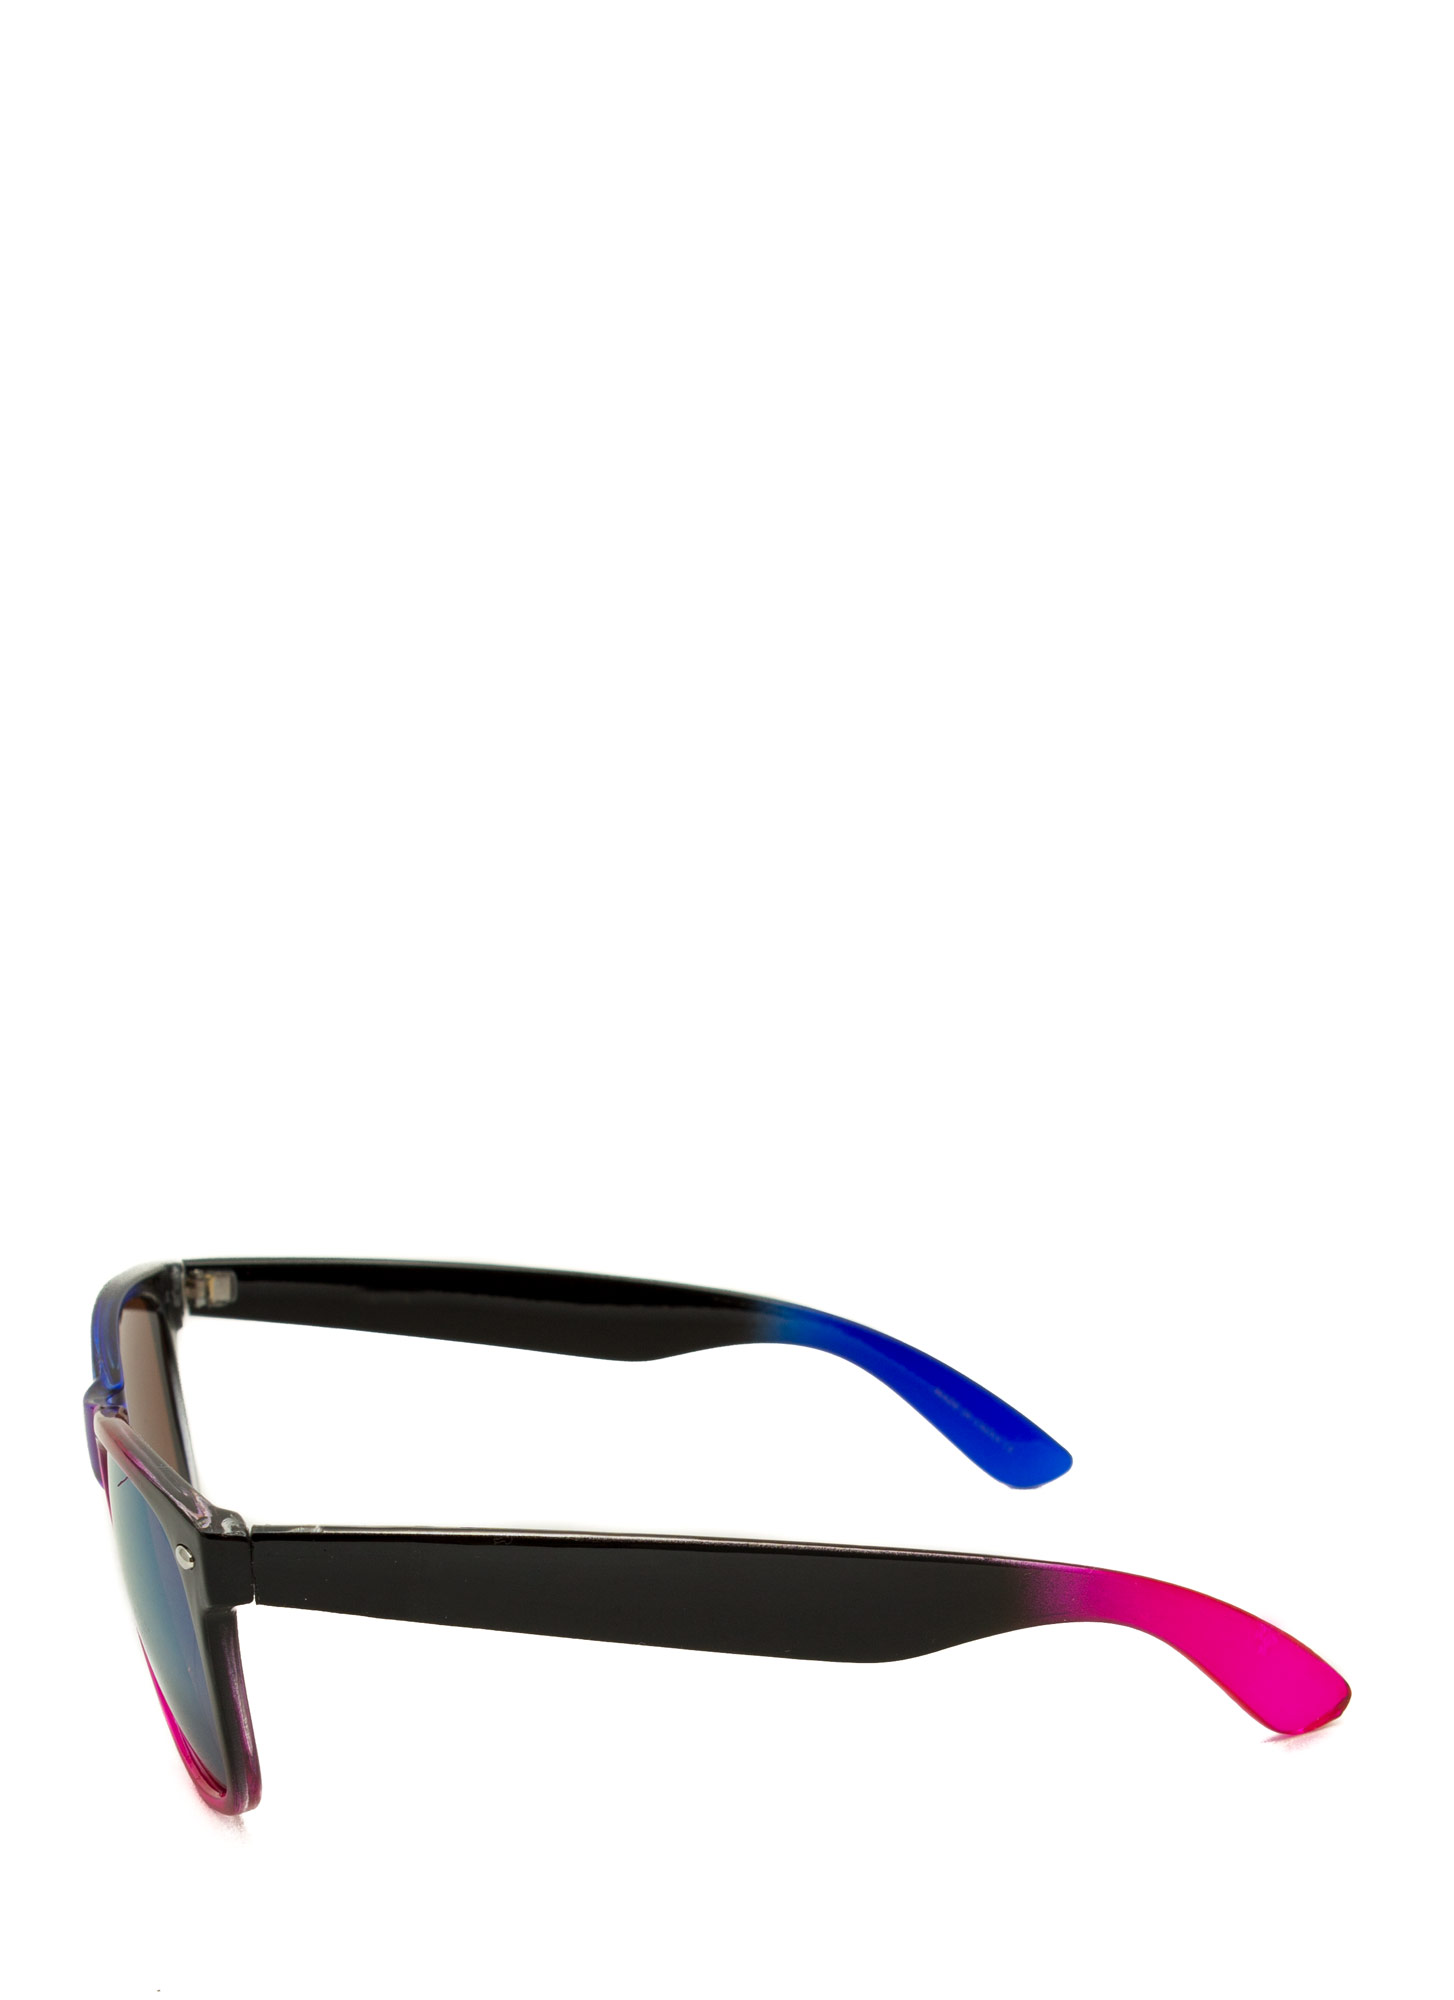 Multicolor Reflective Sunglasses BLUEMULTI